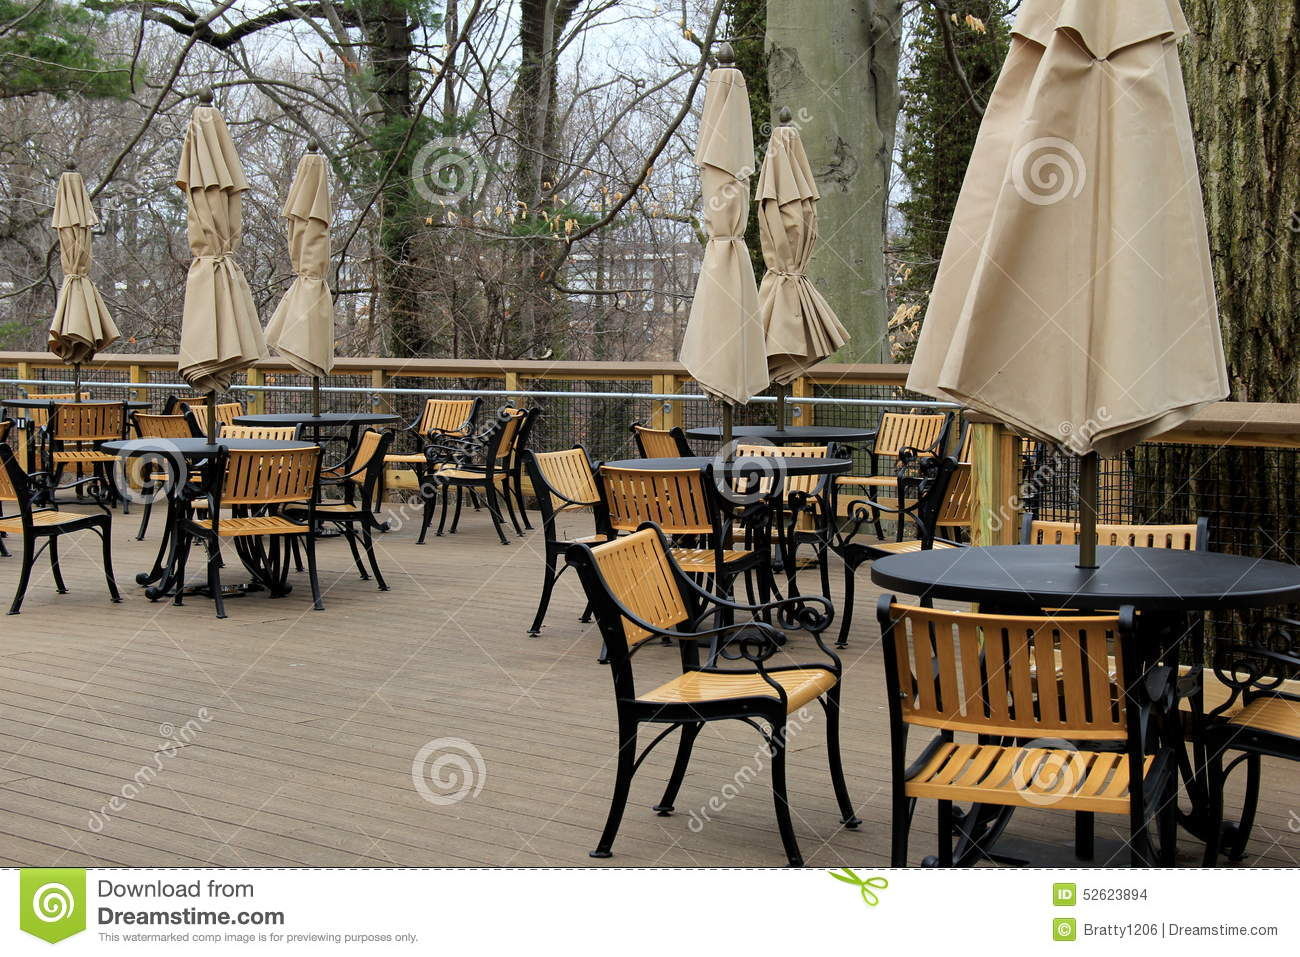 Peaceful Scene Of Tables And Chairs With Tied Umbrellas On Outdoor